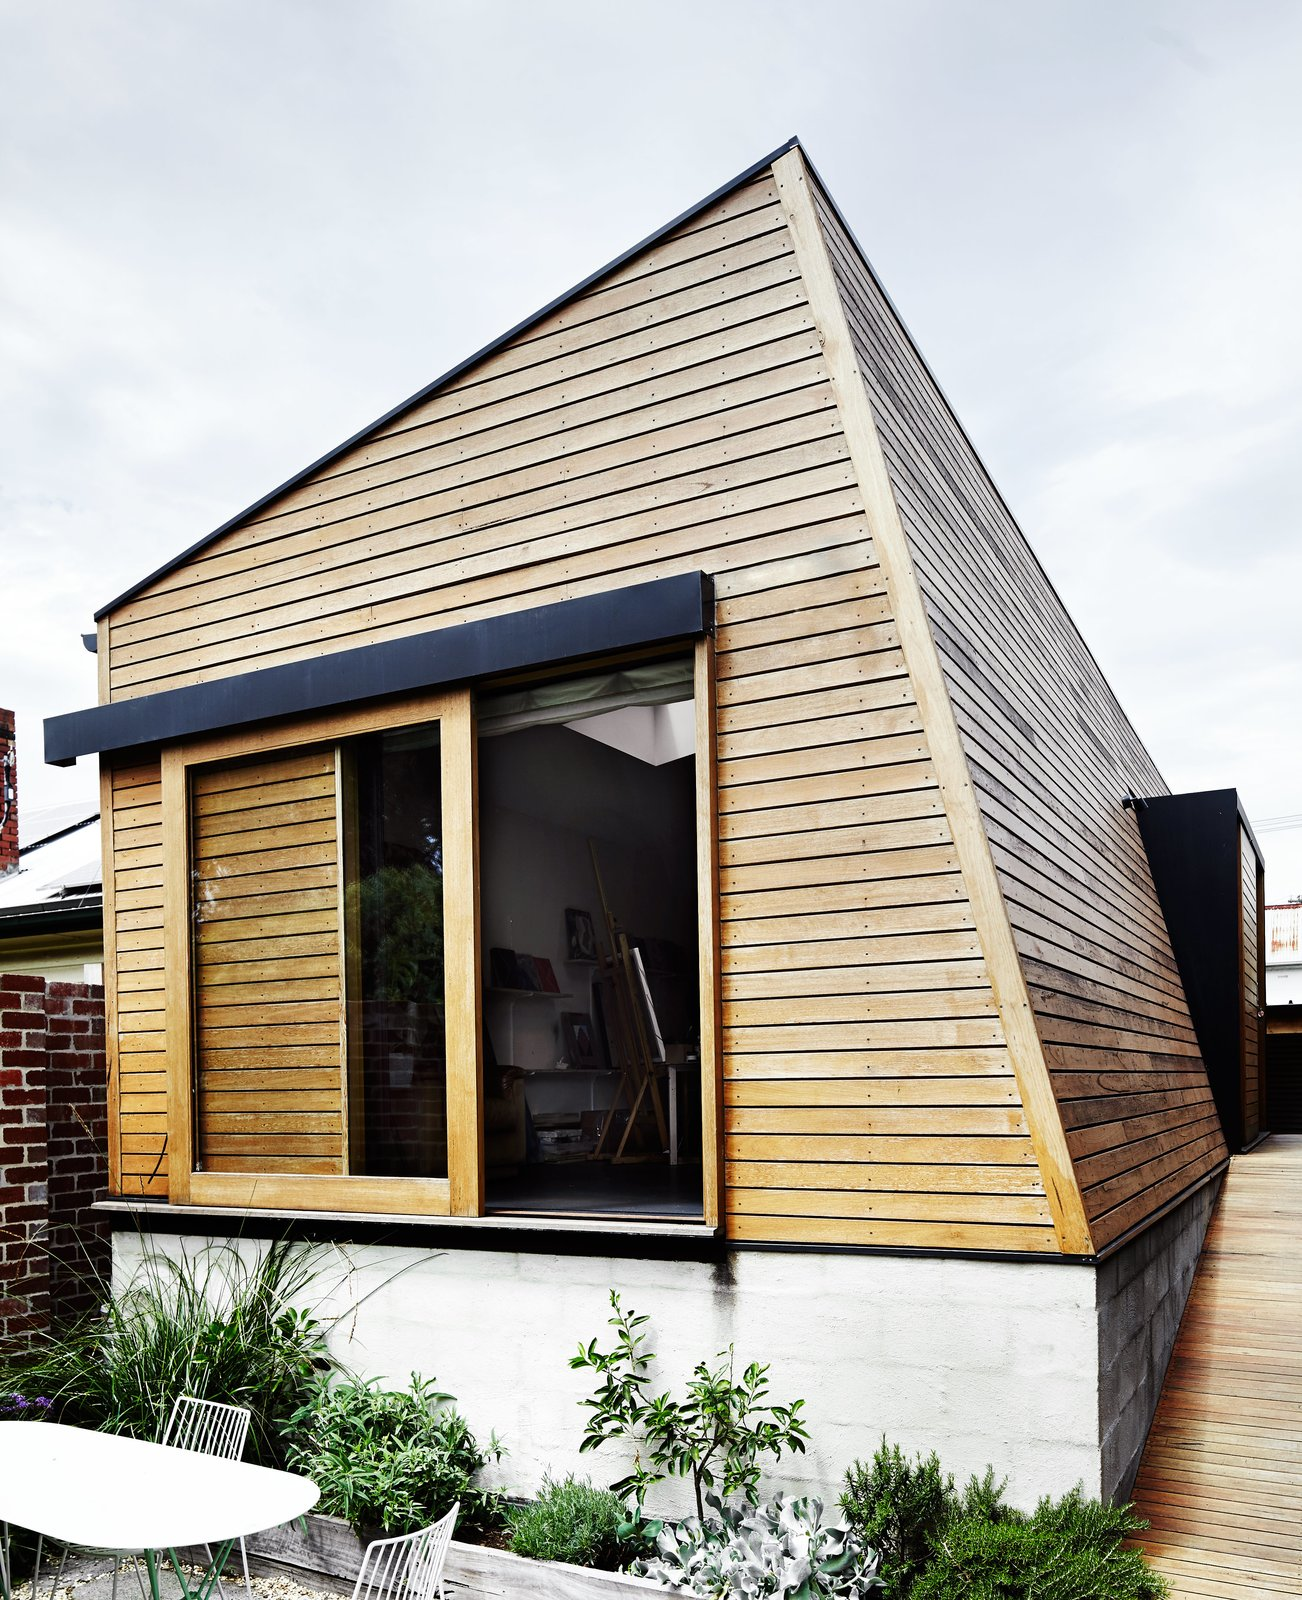 An angular new outbuilding fills the footprint of what was once an inground swimming pool, completing an awkward corner at the back of the site. An Unassuming Edwardian Saves the Best for Out Back - Photo 11 of 13